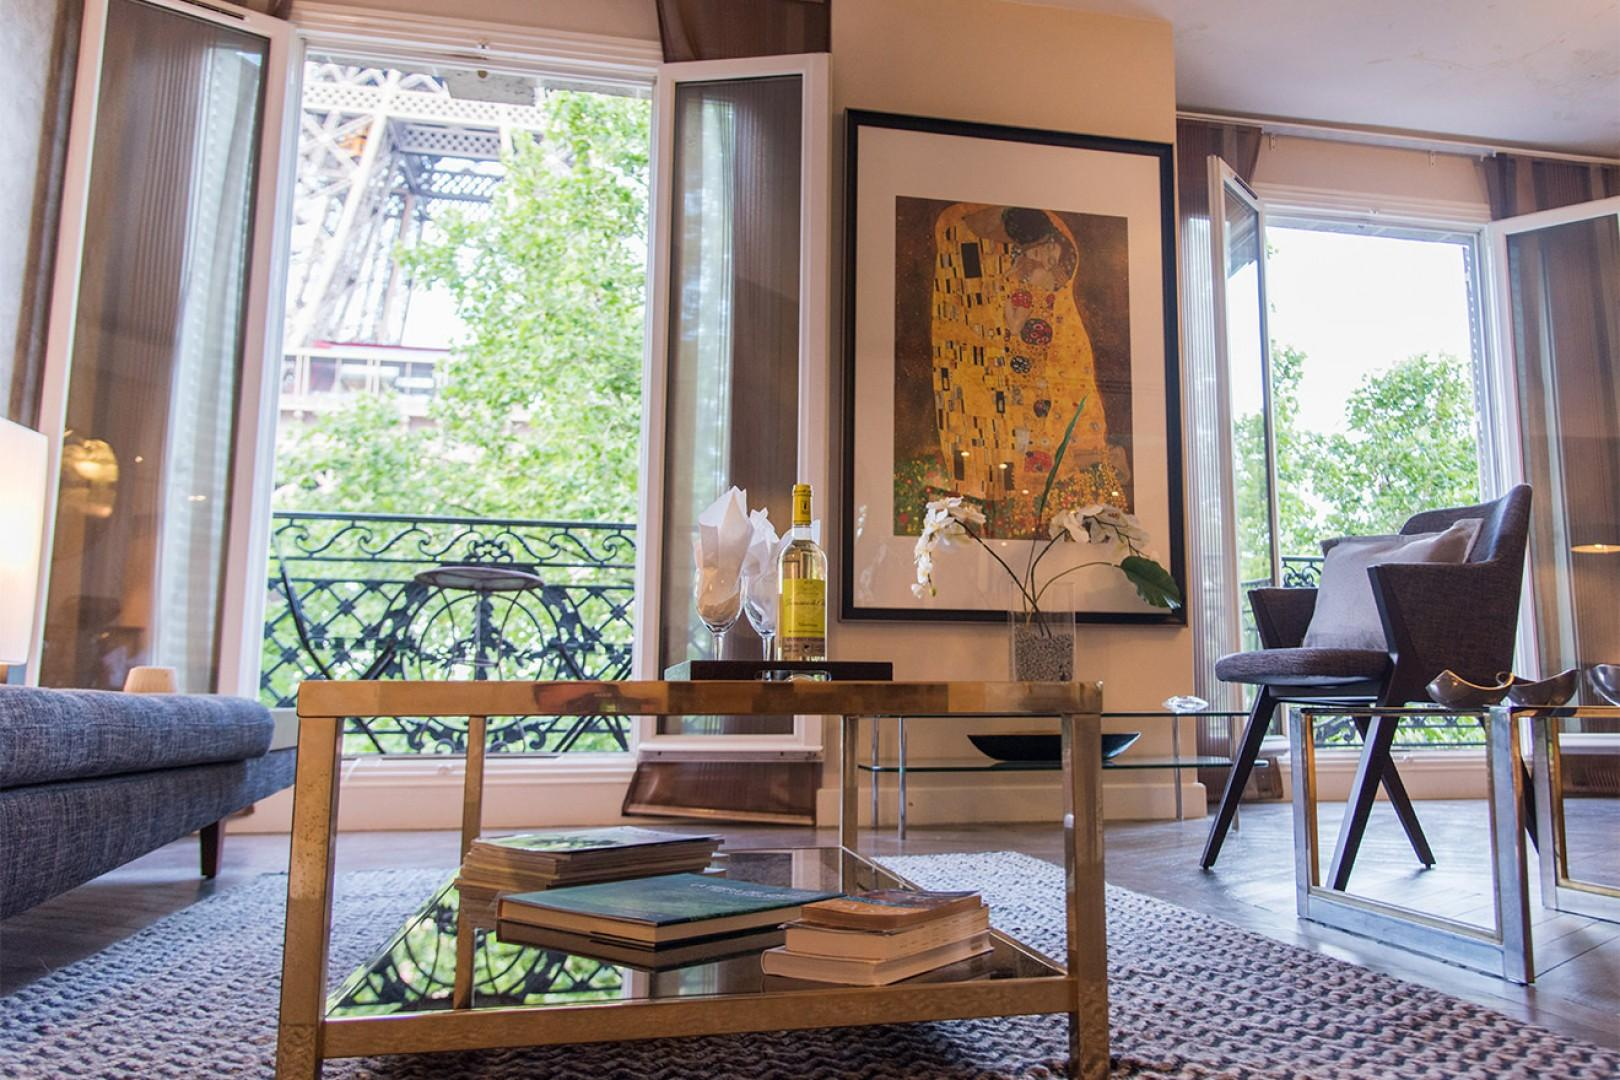 The highlight of your day in Paris will be returning home to this spacious rental.